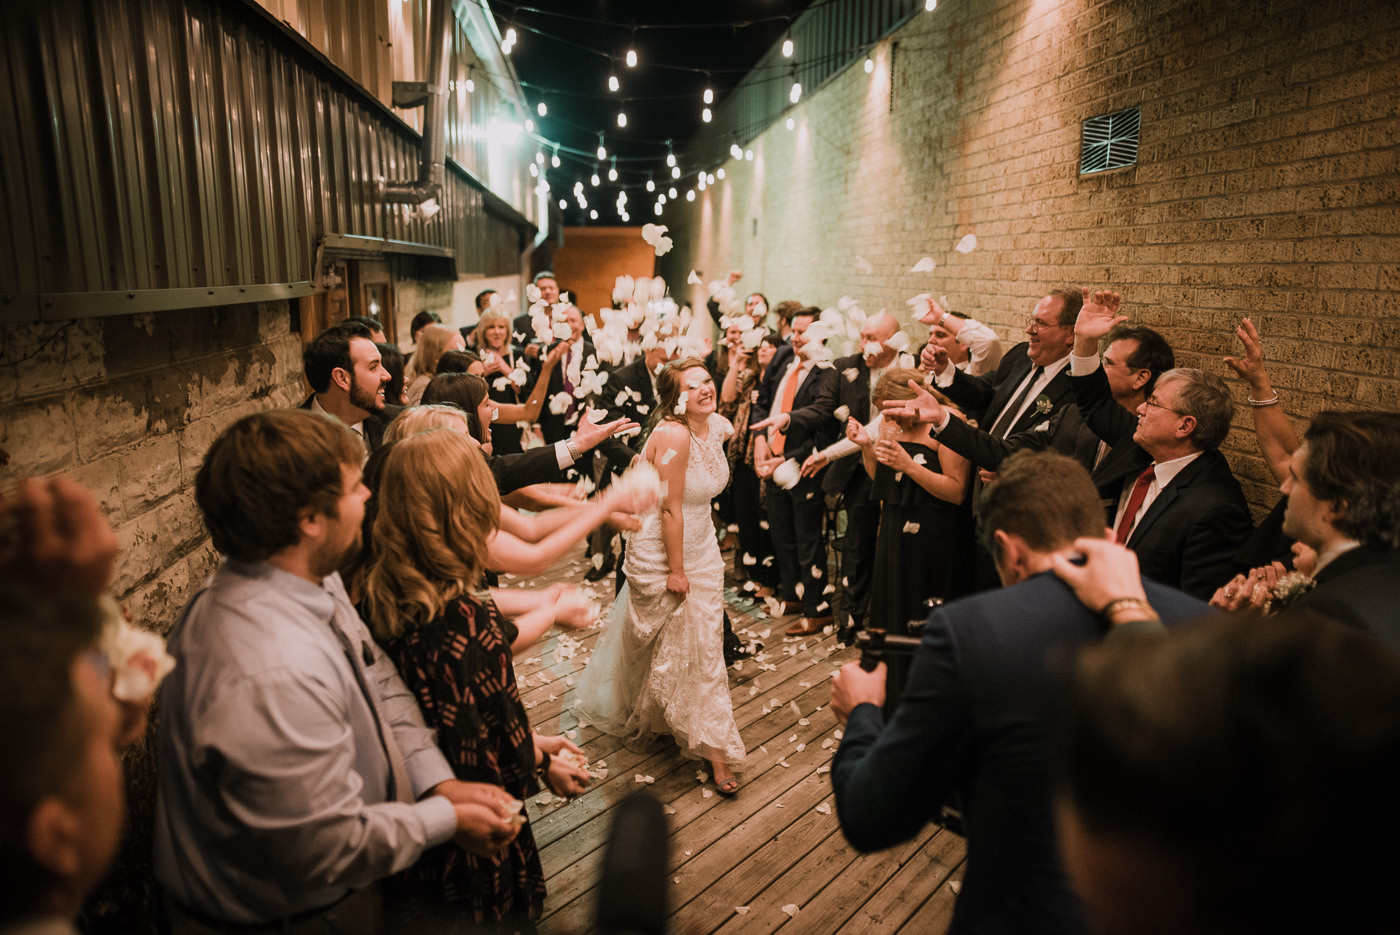 rogers.arkansas.weddingphotos.©2018mileswittboyer-43.jpg